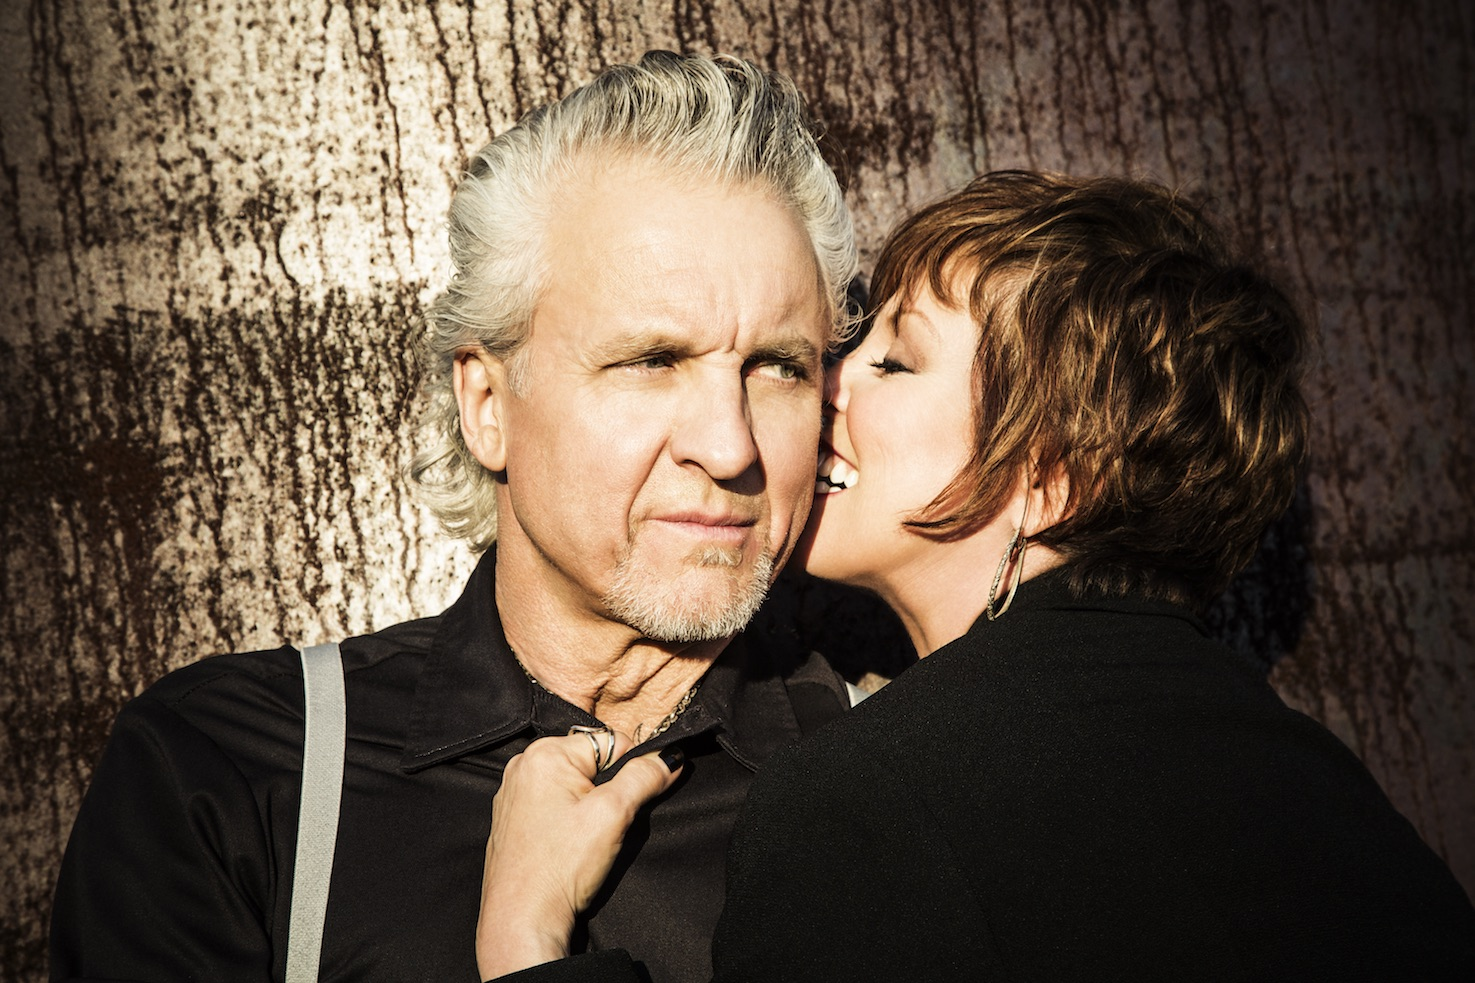 Pat Benatar & Neil Giraldo photo 2, 72 res